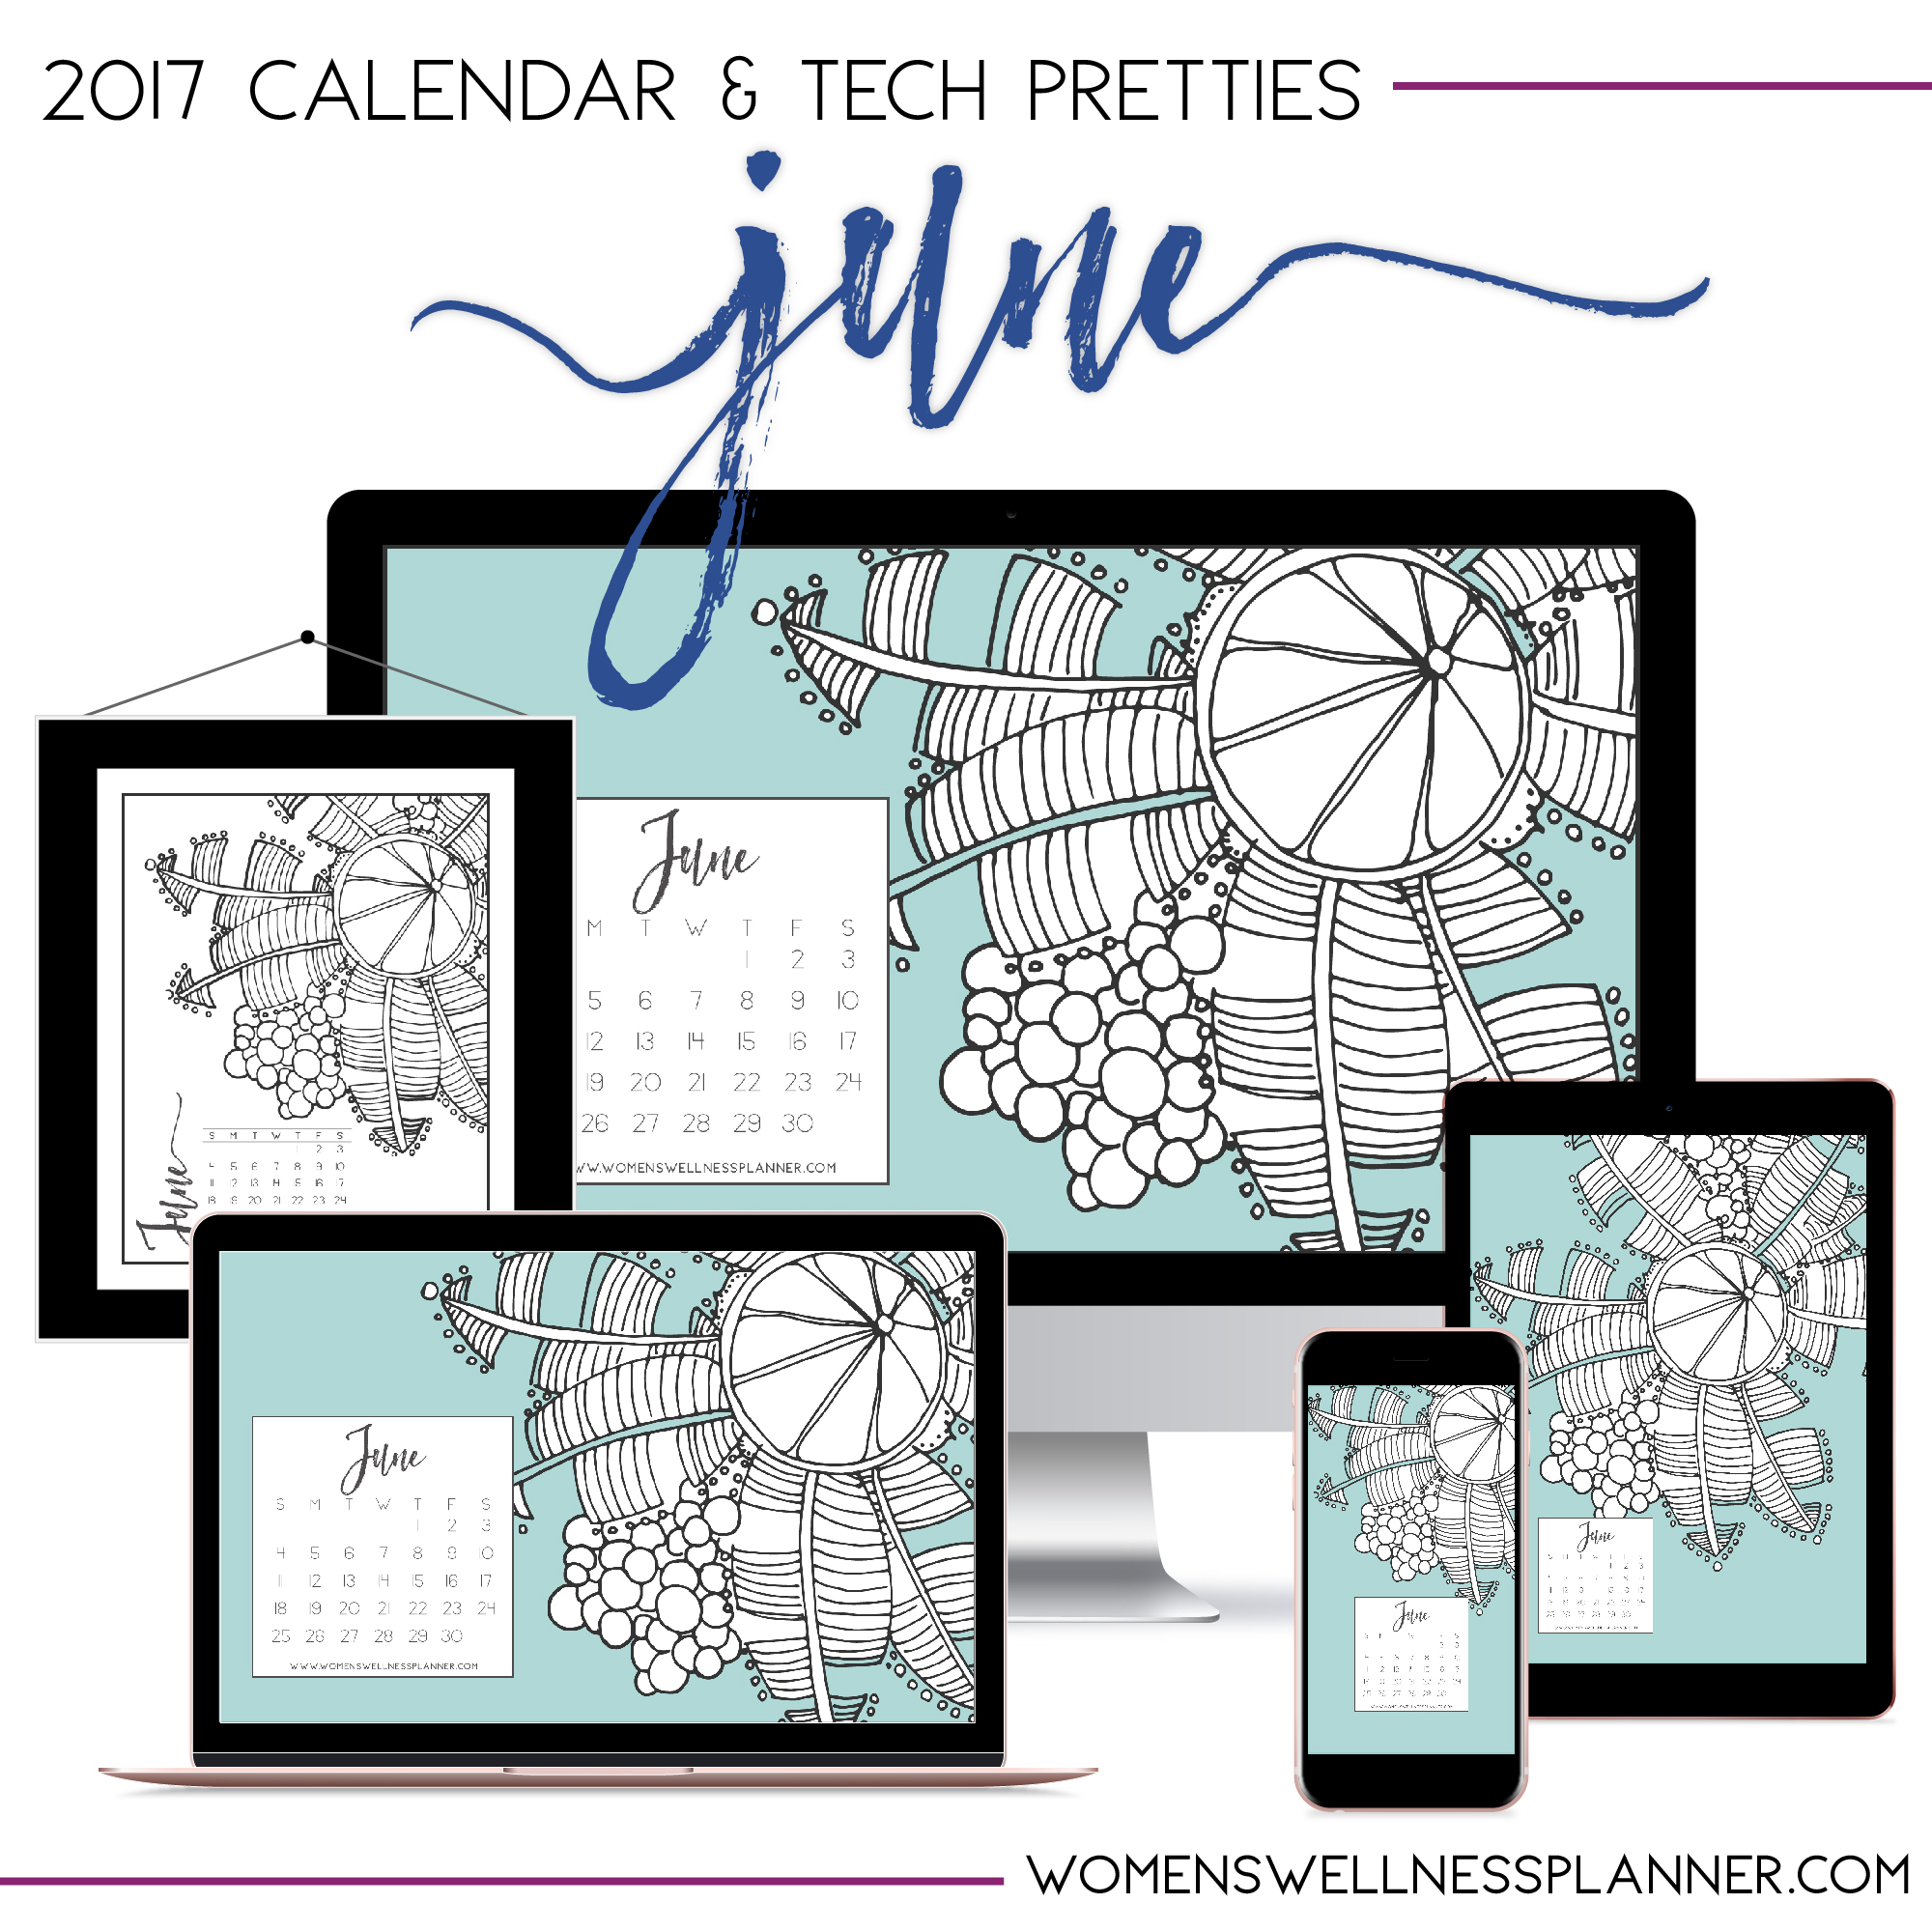 June 2017 Printable Calendar & Tech Pretties | Women's Wellness Planner